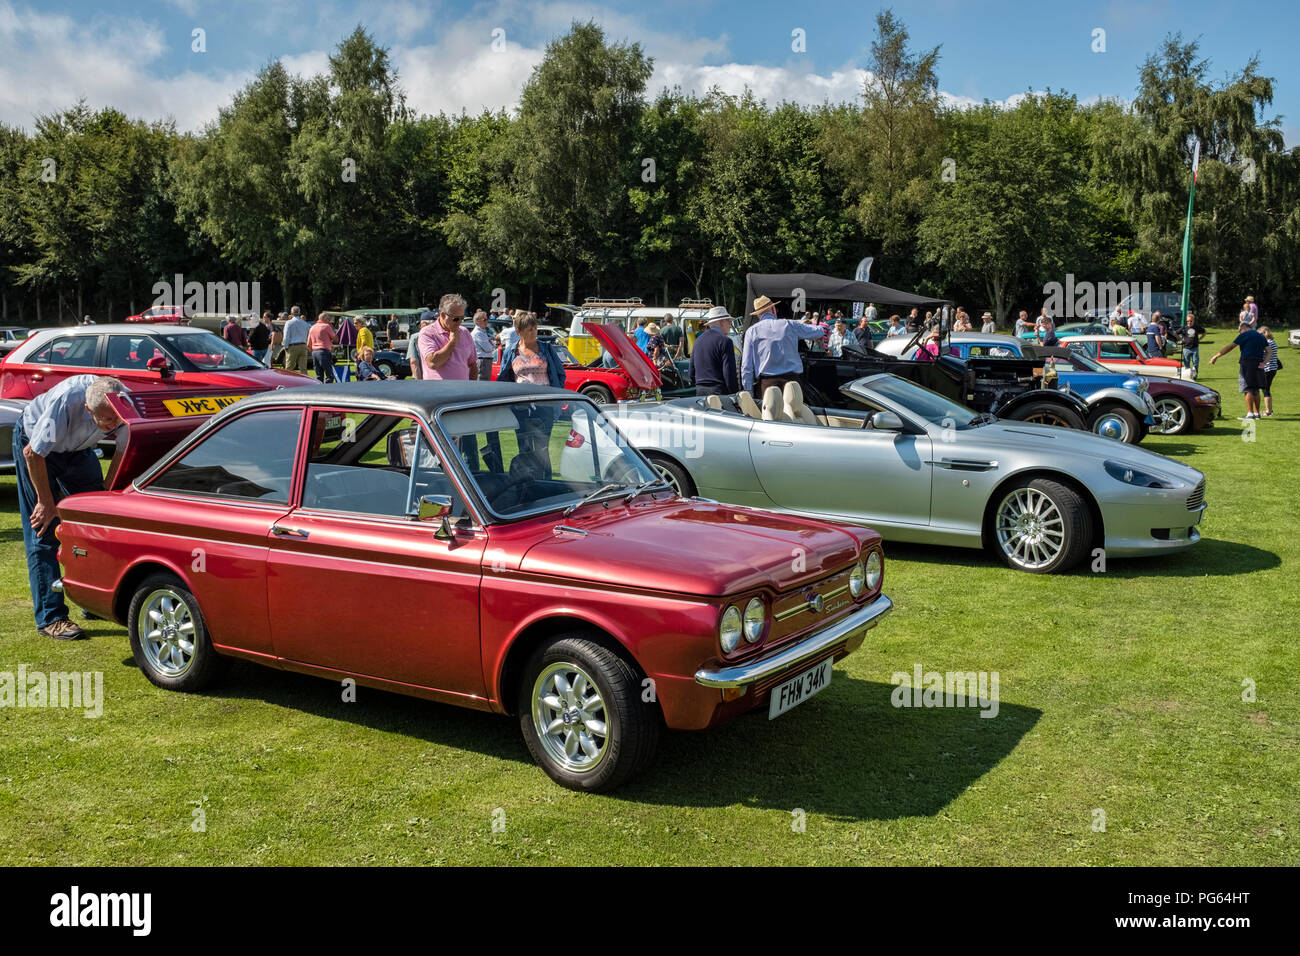 Sunbeam Stiletto at a classic car show in Wales. - Stock Image